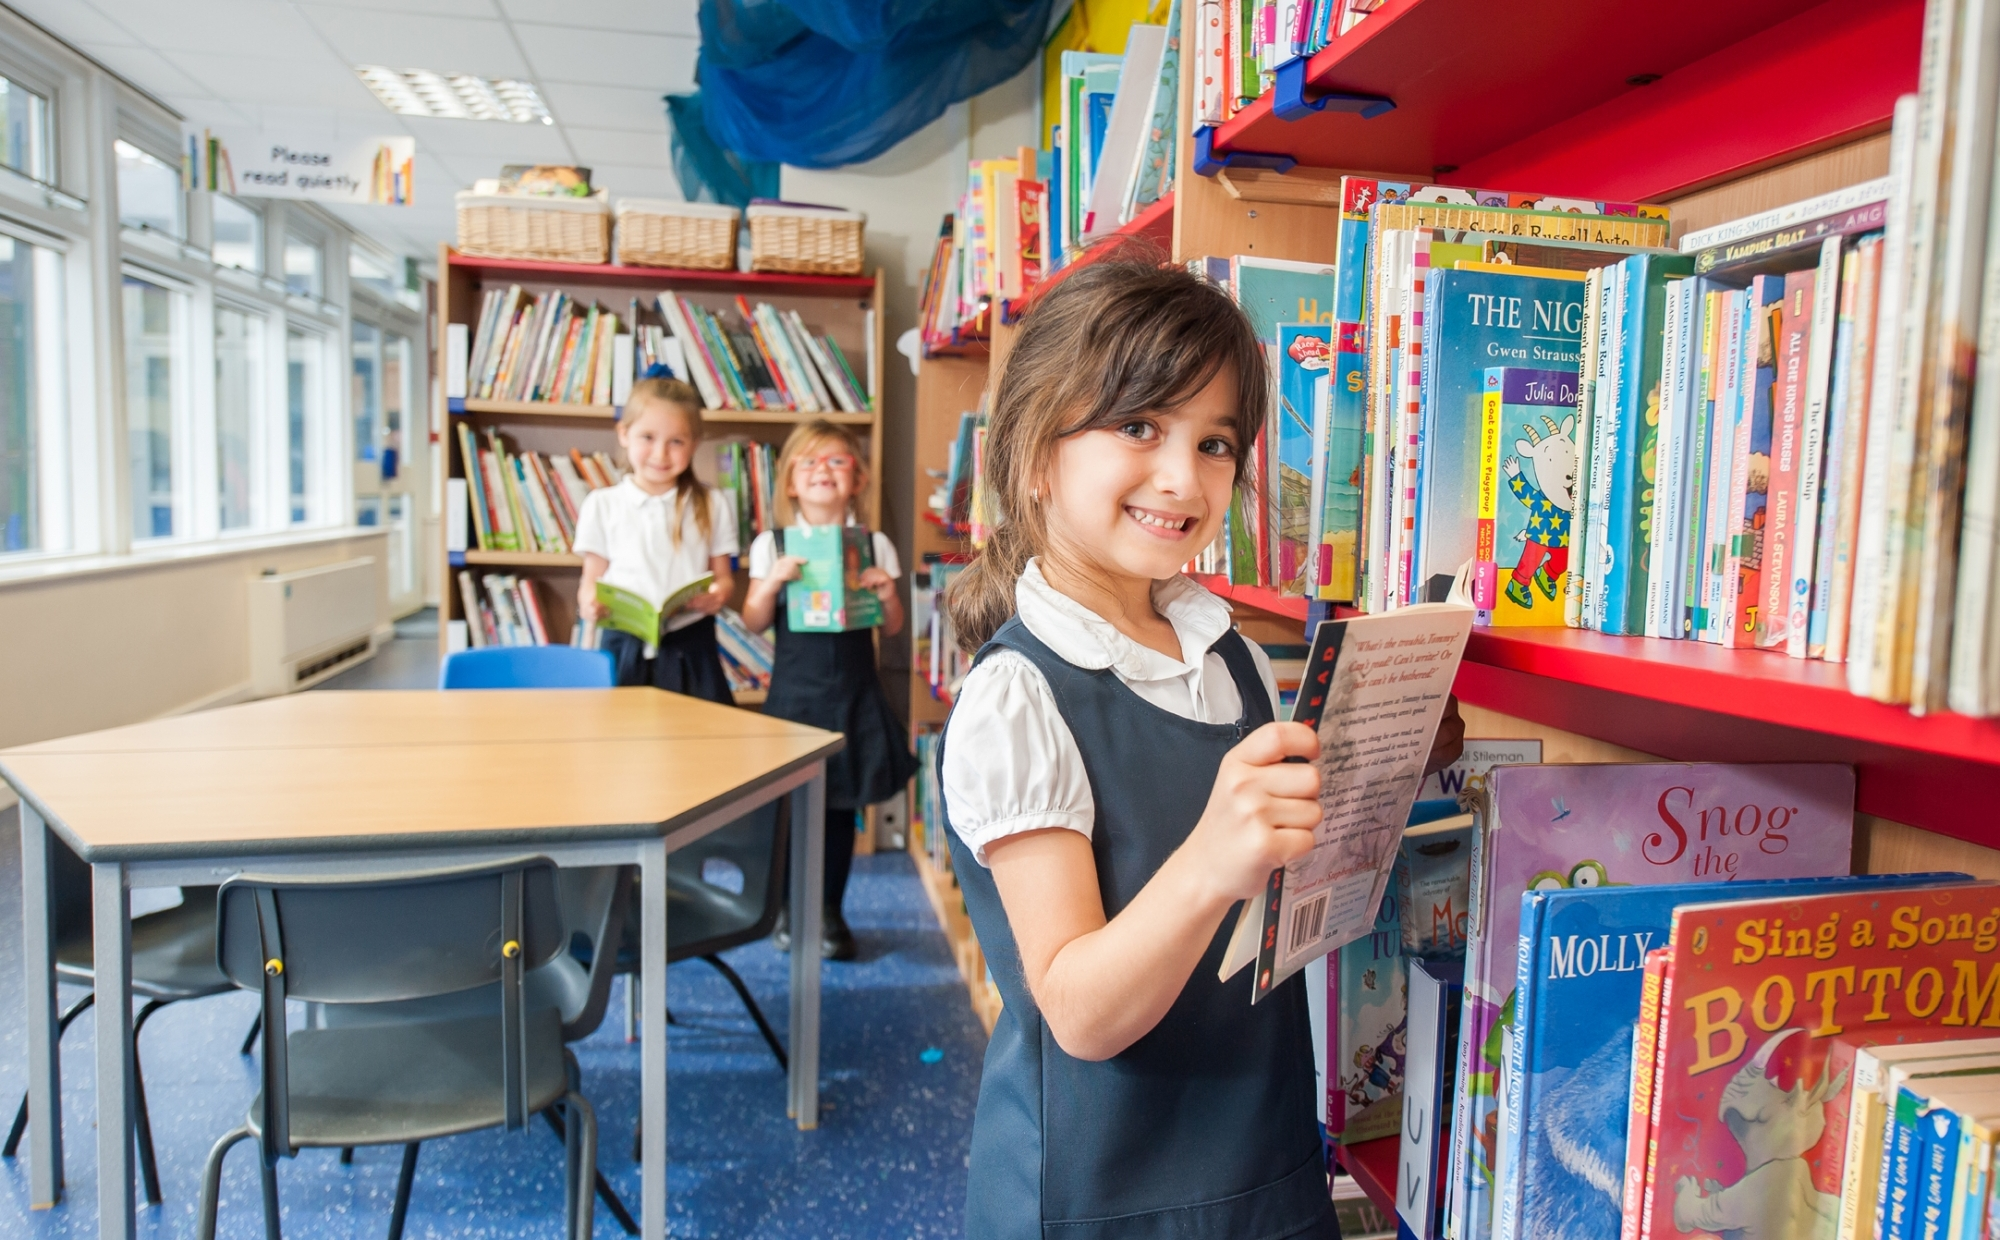 Pupils in the library at St Philip's CE Primary School